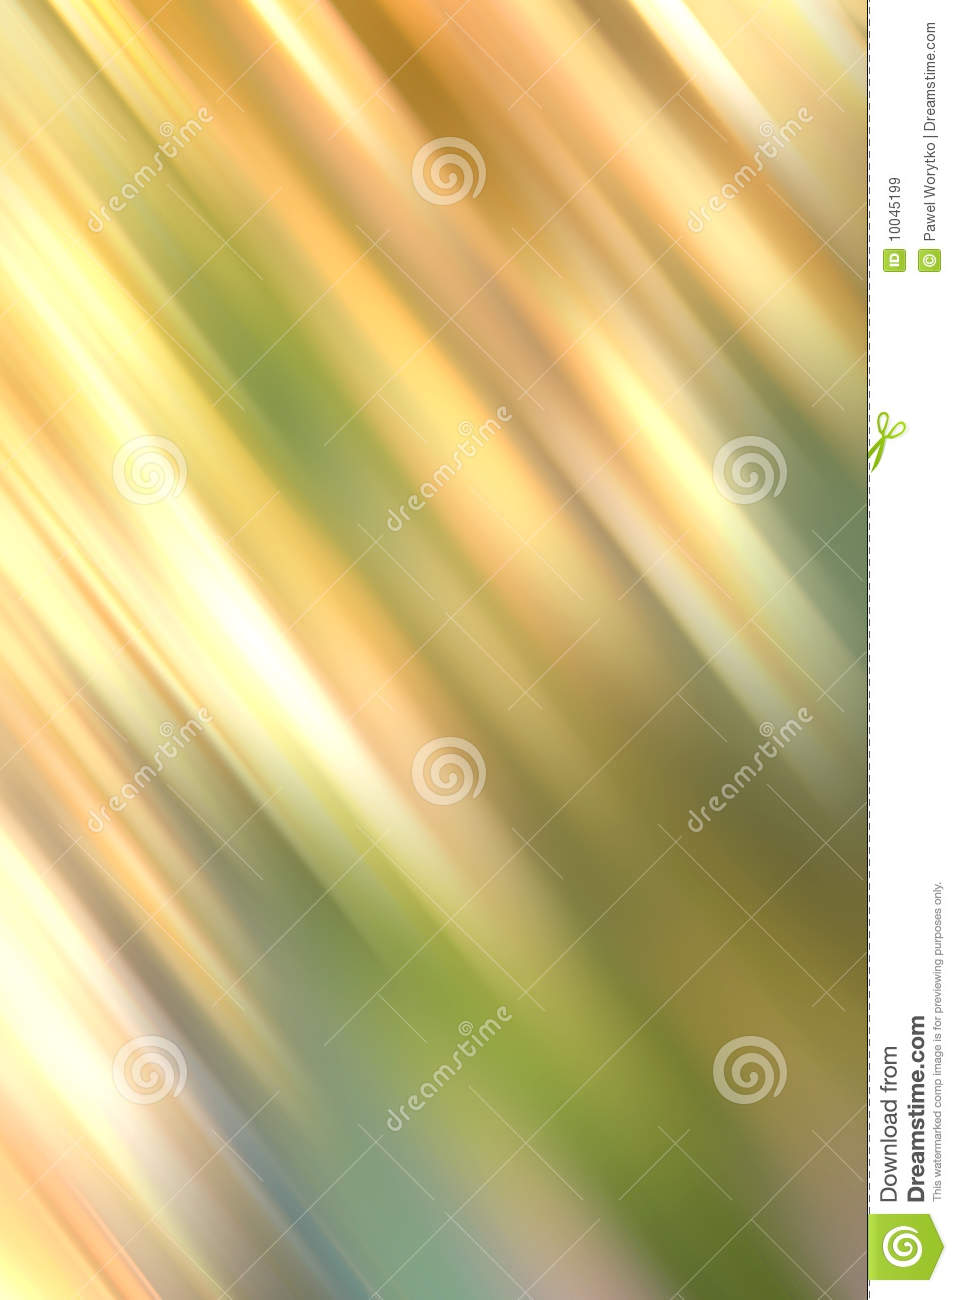 Superb Green And Beige Background Royalty Free Stock Images Image: 10045199  Design Ideas